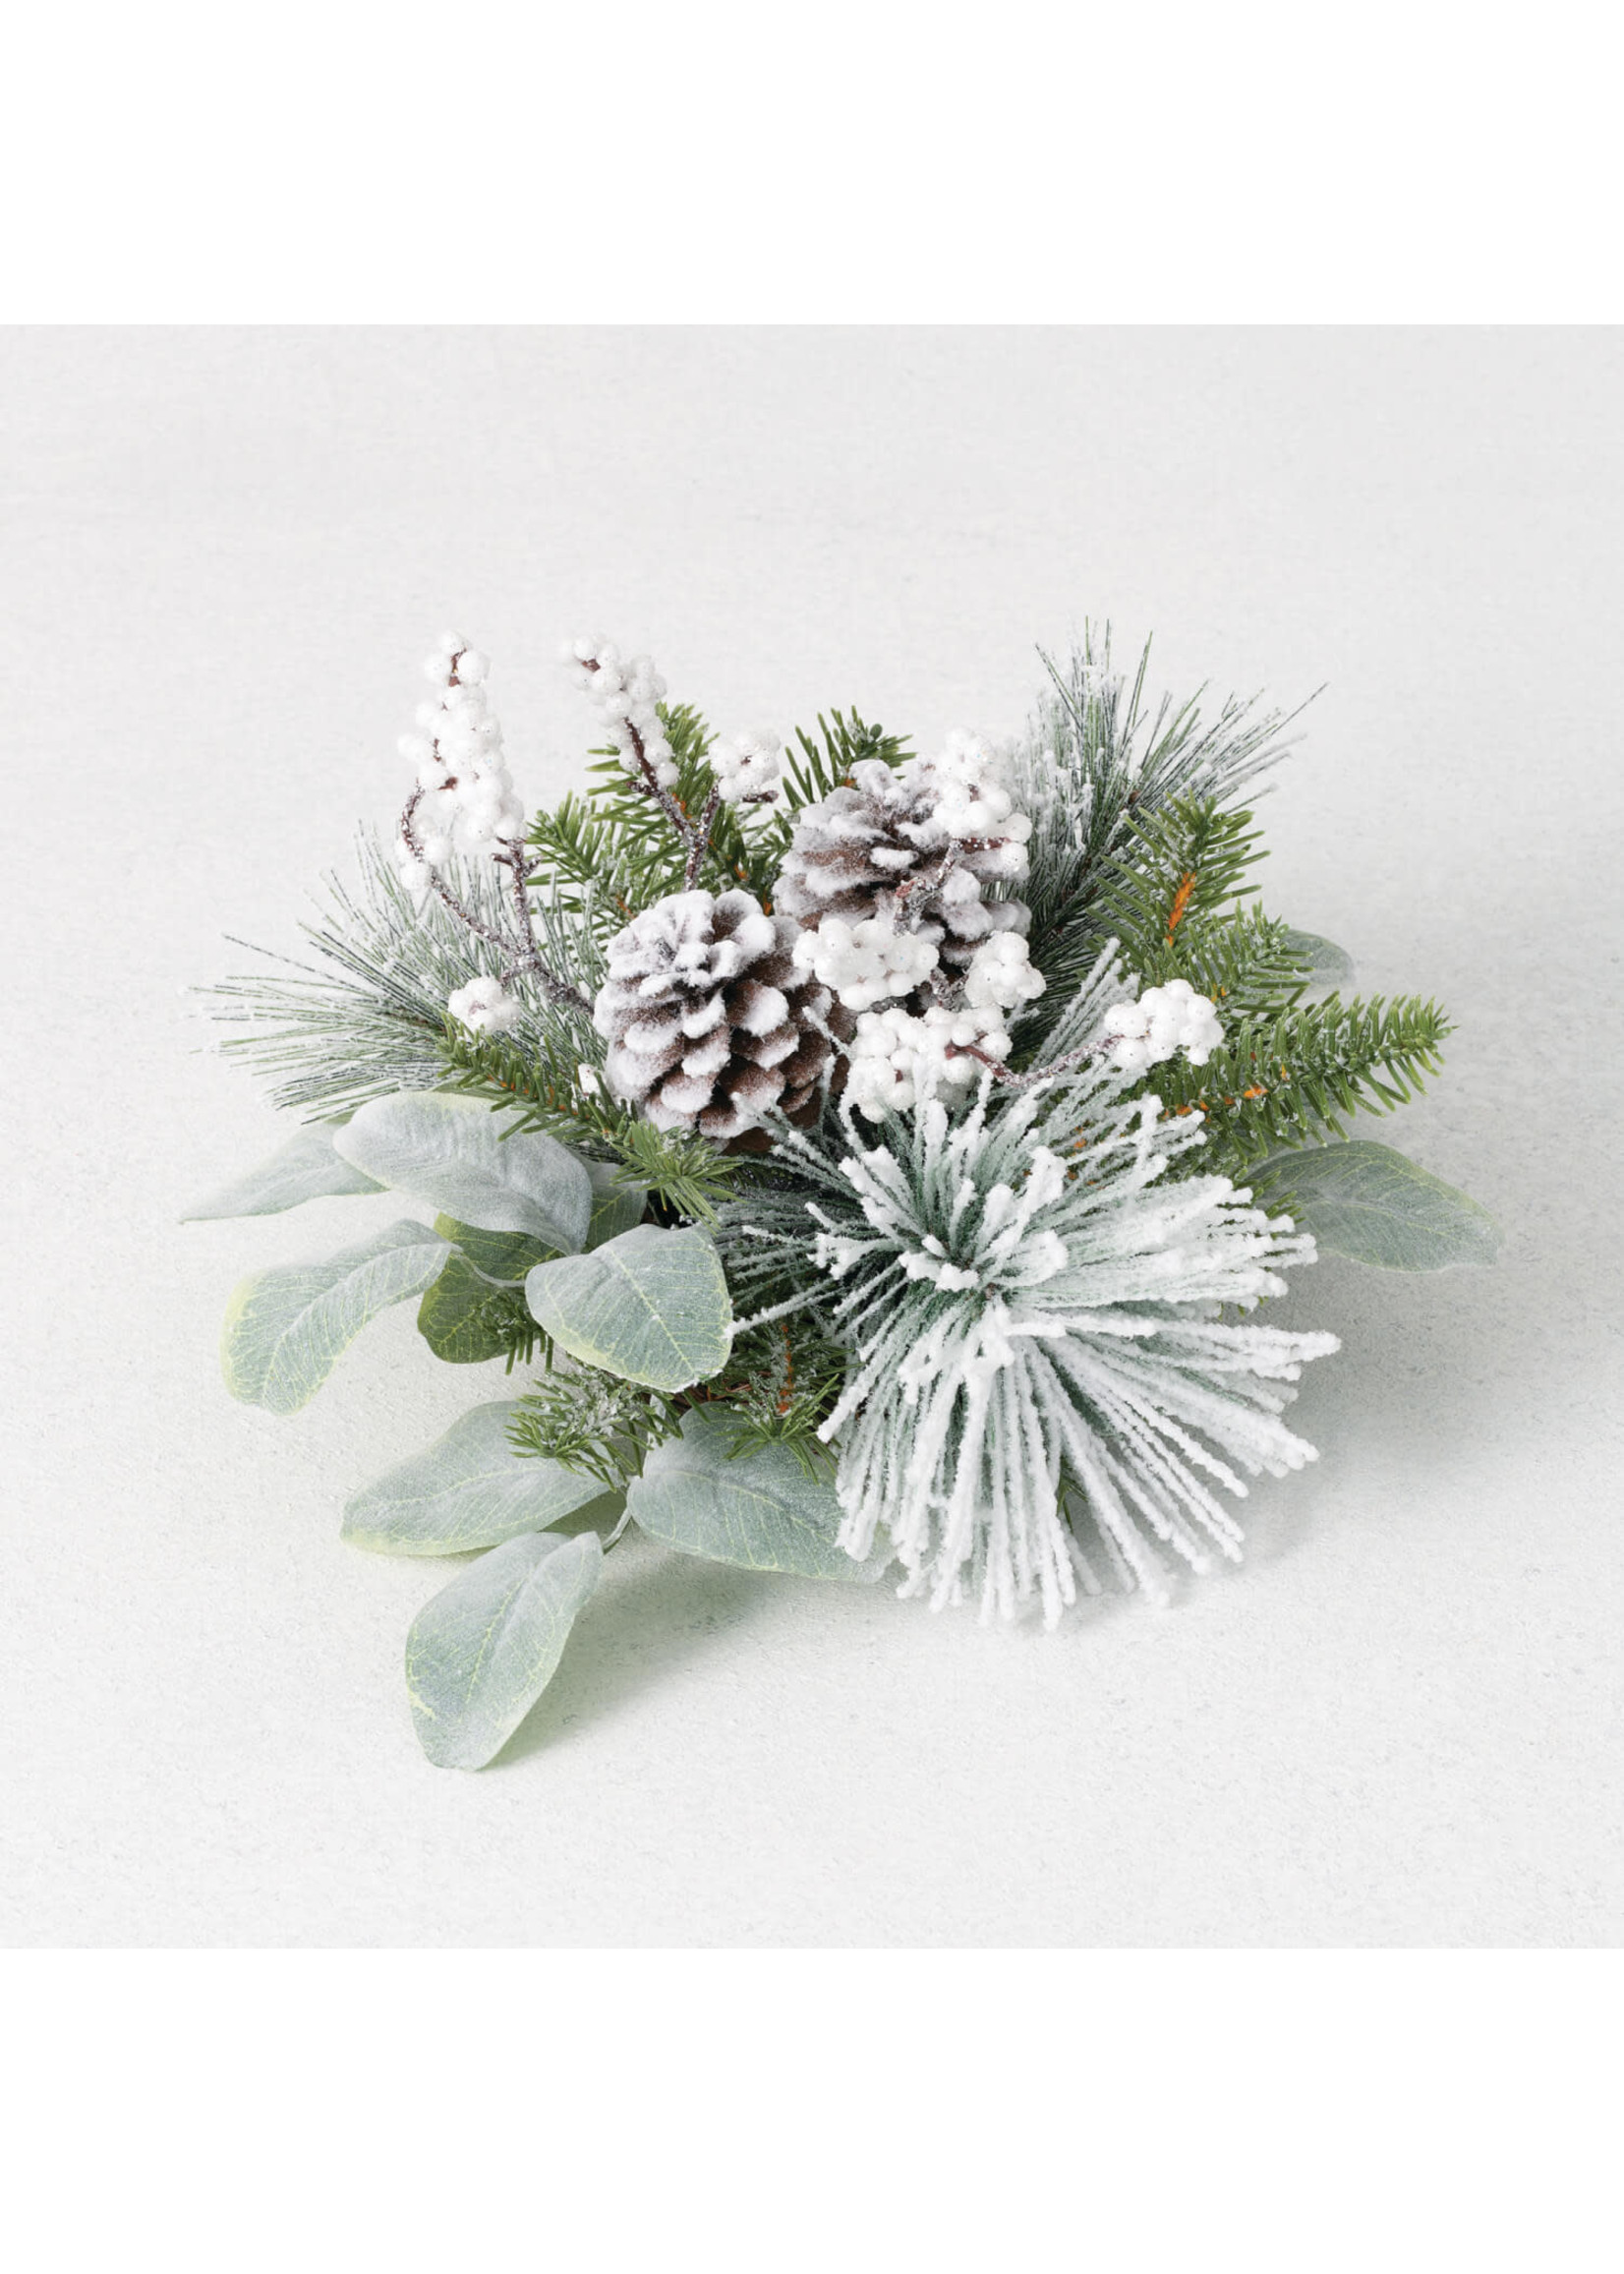 Sullivans Mix Pine, Euc, Berry Orb Frosted Green